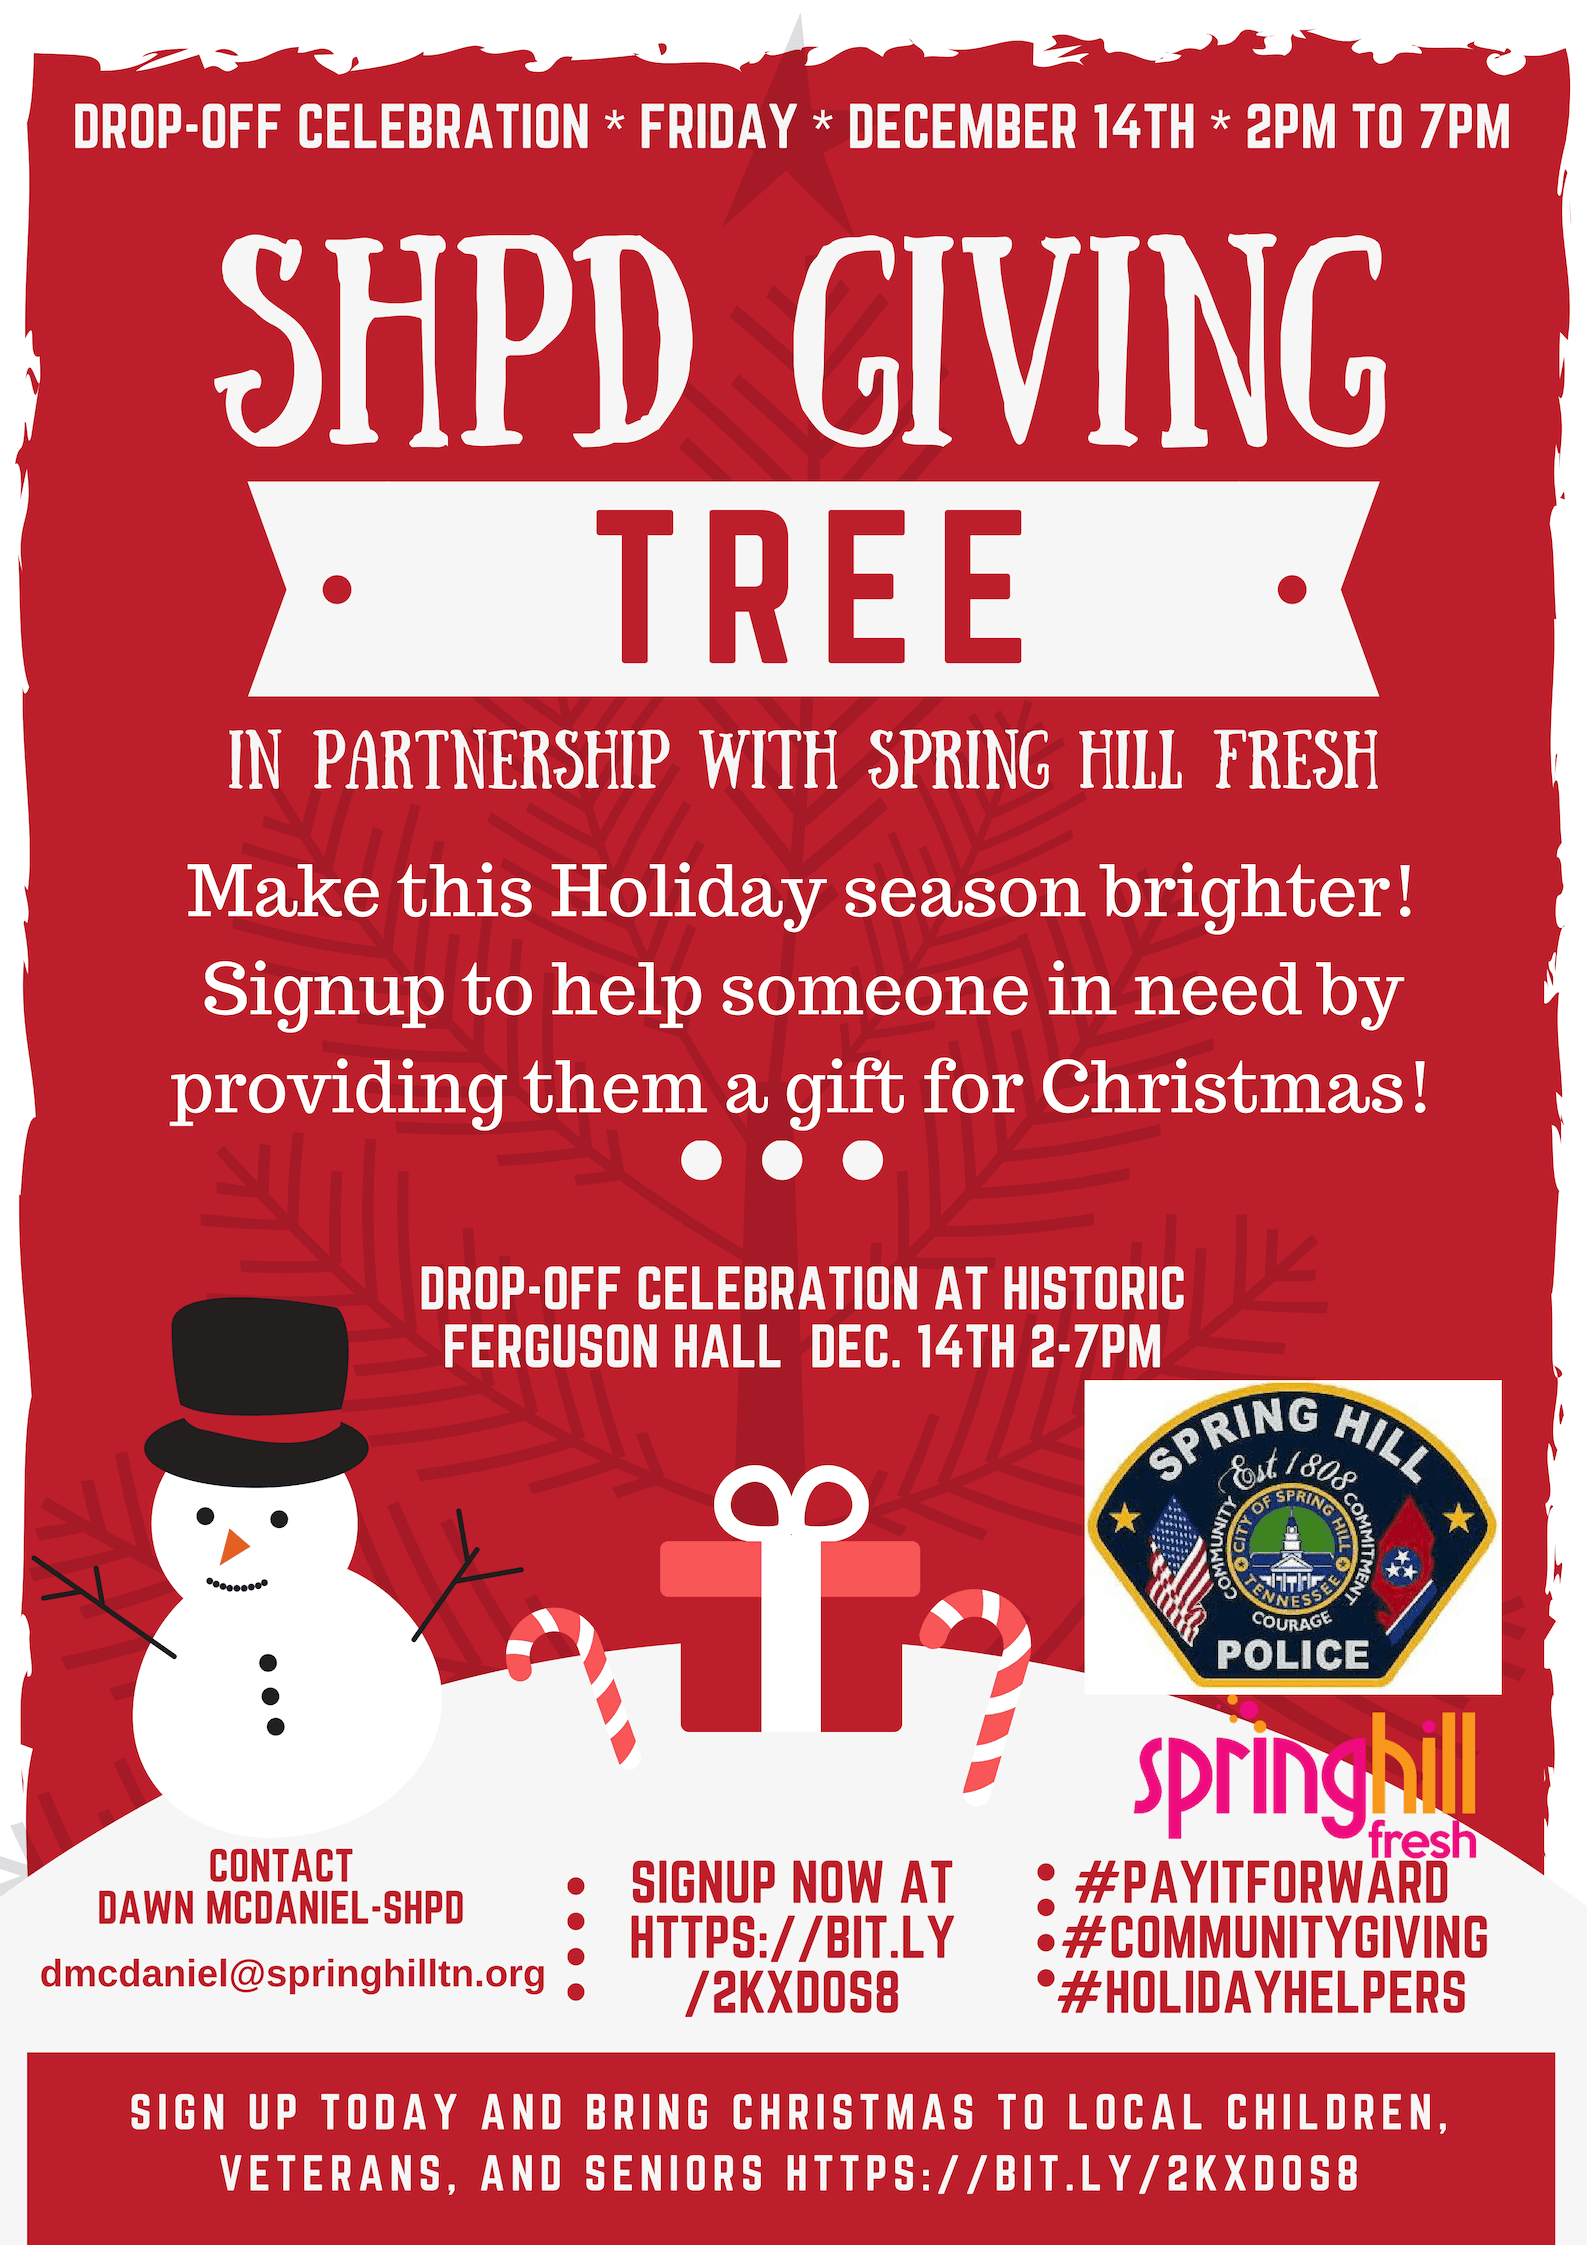 SHPD-Giving-Tree2018